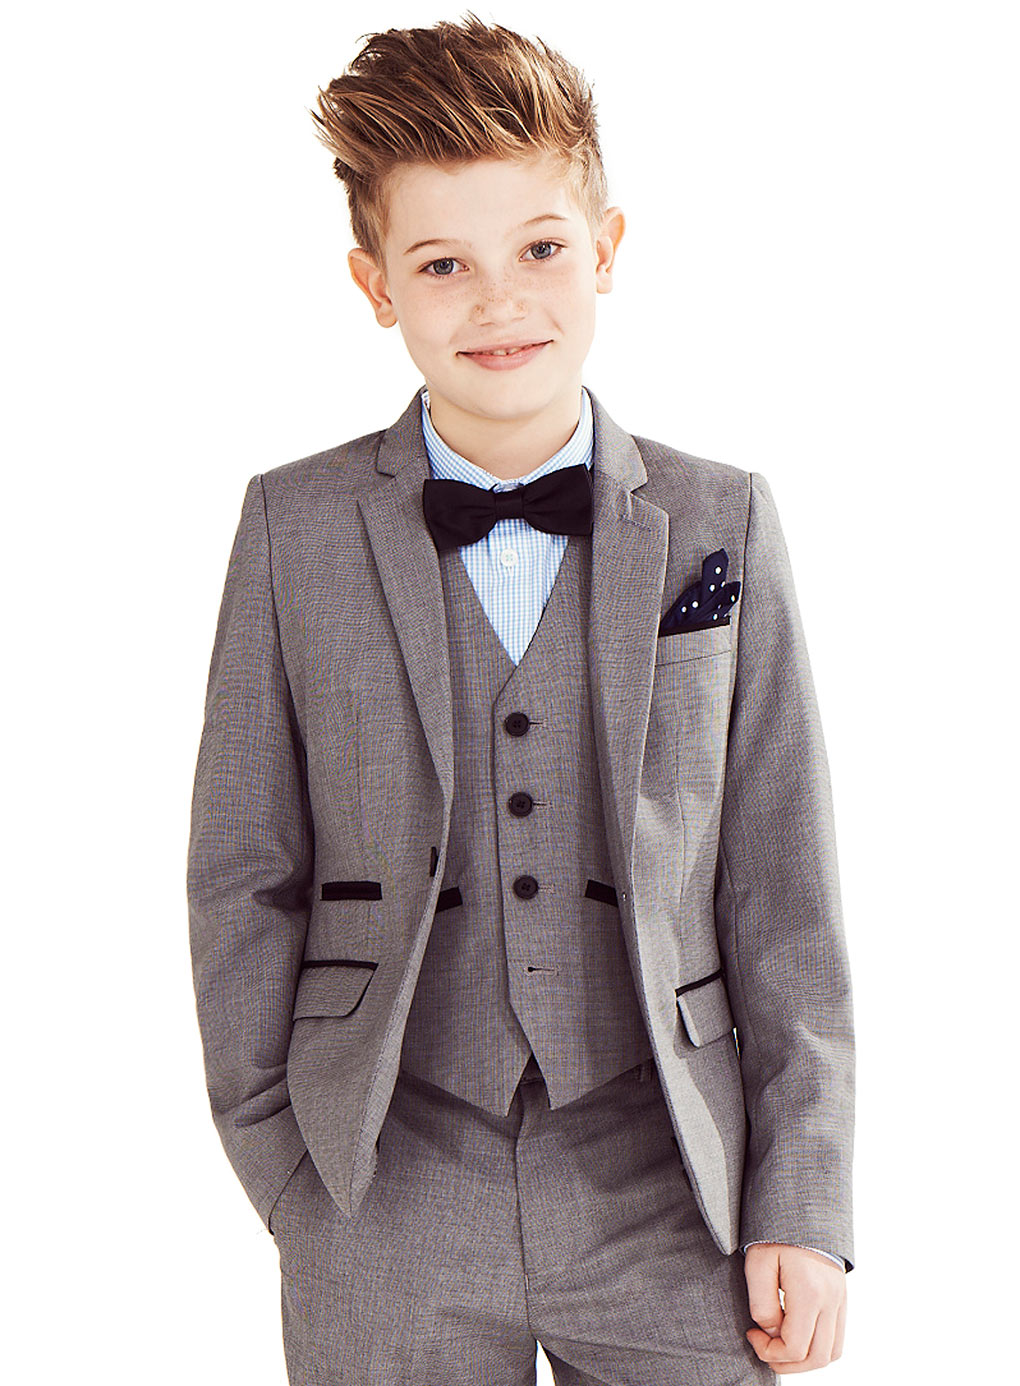 Angel Boys Toddler Tuxedo Suit with Tie BABY Size / 2T - 3T - 4T. Sold by nikgold. $ Black N Bianco Boys Toddler Infants Tuxedo Suit with Tie Size Small-X-Large. Sold by House Bianco. $ Angel Boys Toddler White Tuxedo Suit with Tail BABY Size / 2T - 3T - 4T/BOW TIE.